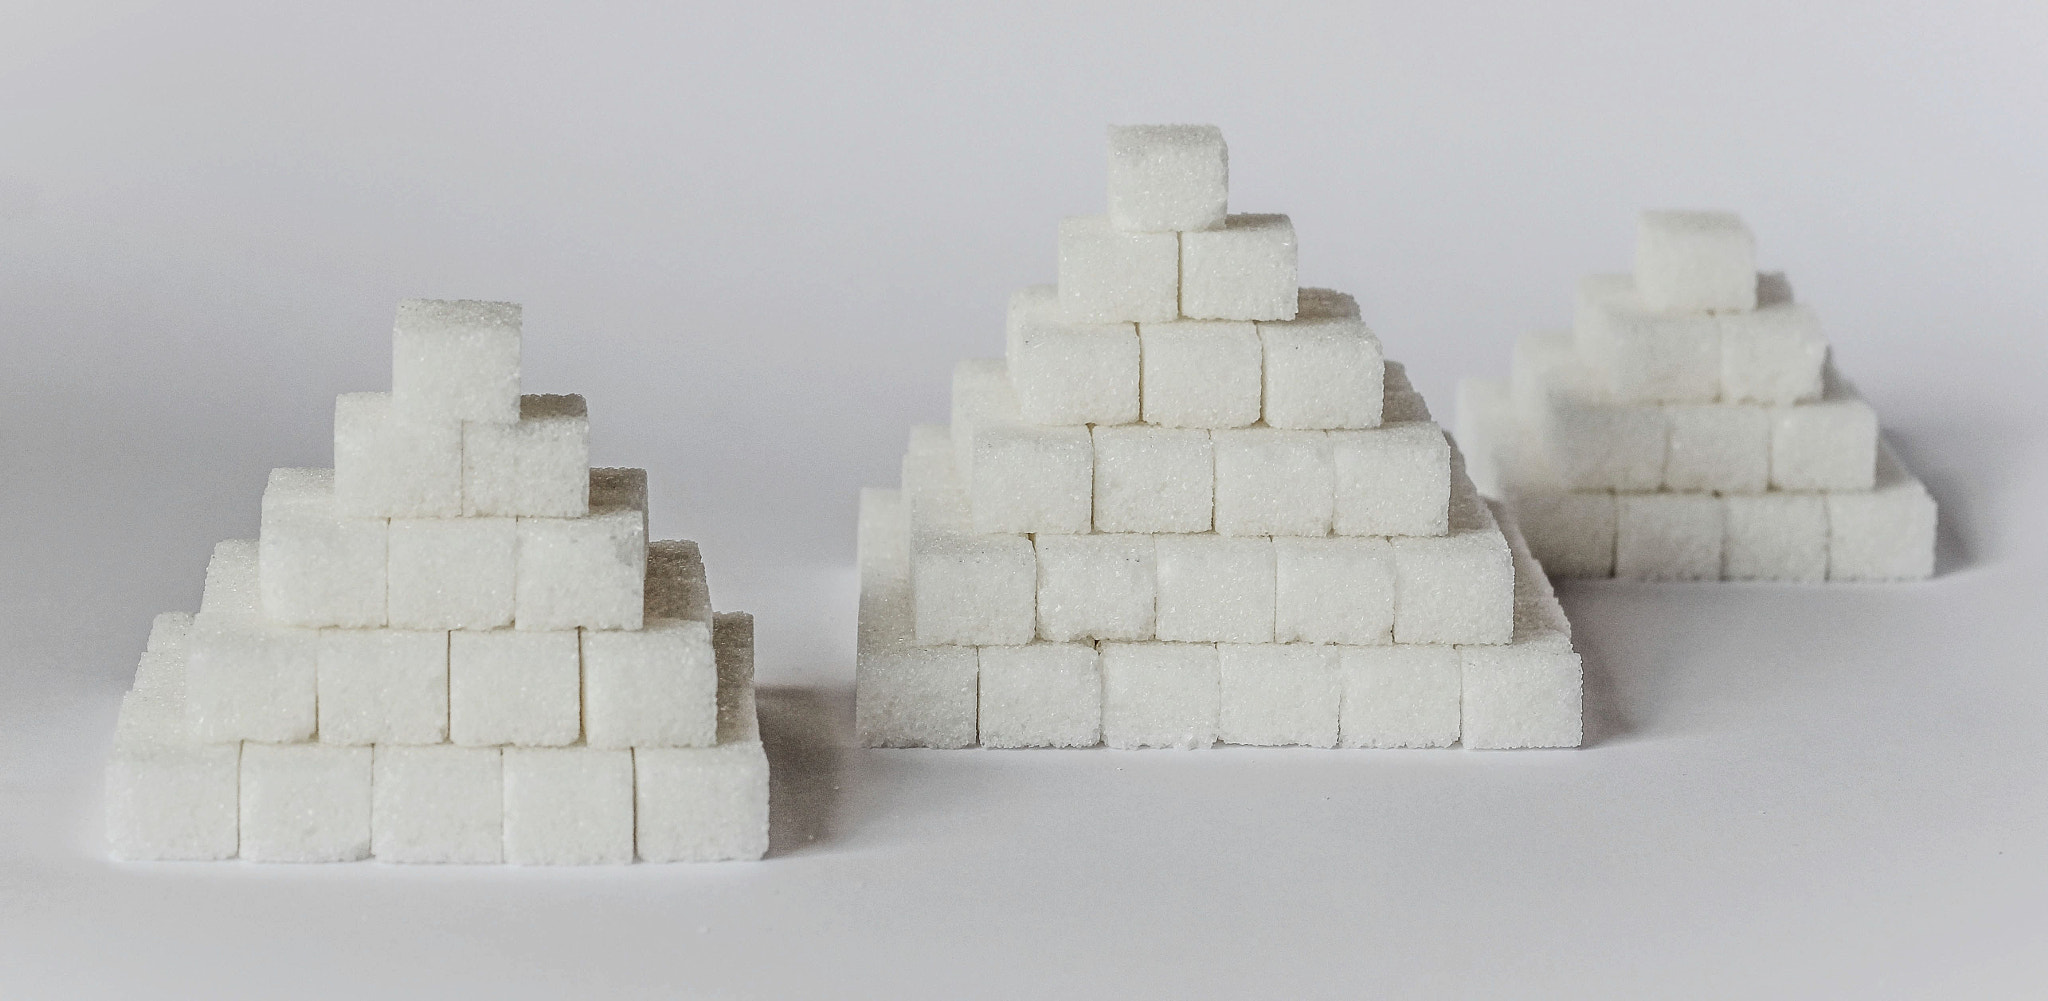 Photograph Sugar pyramids by András Herceg on 500px